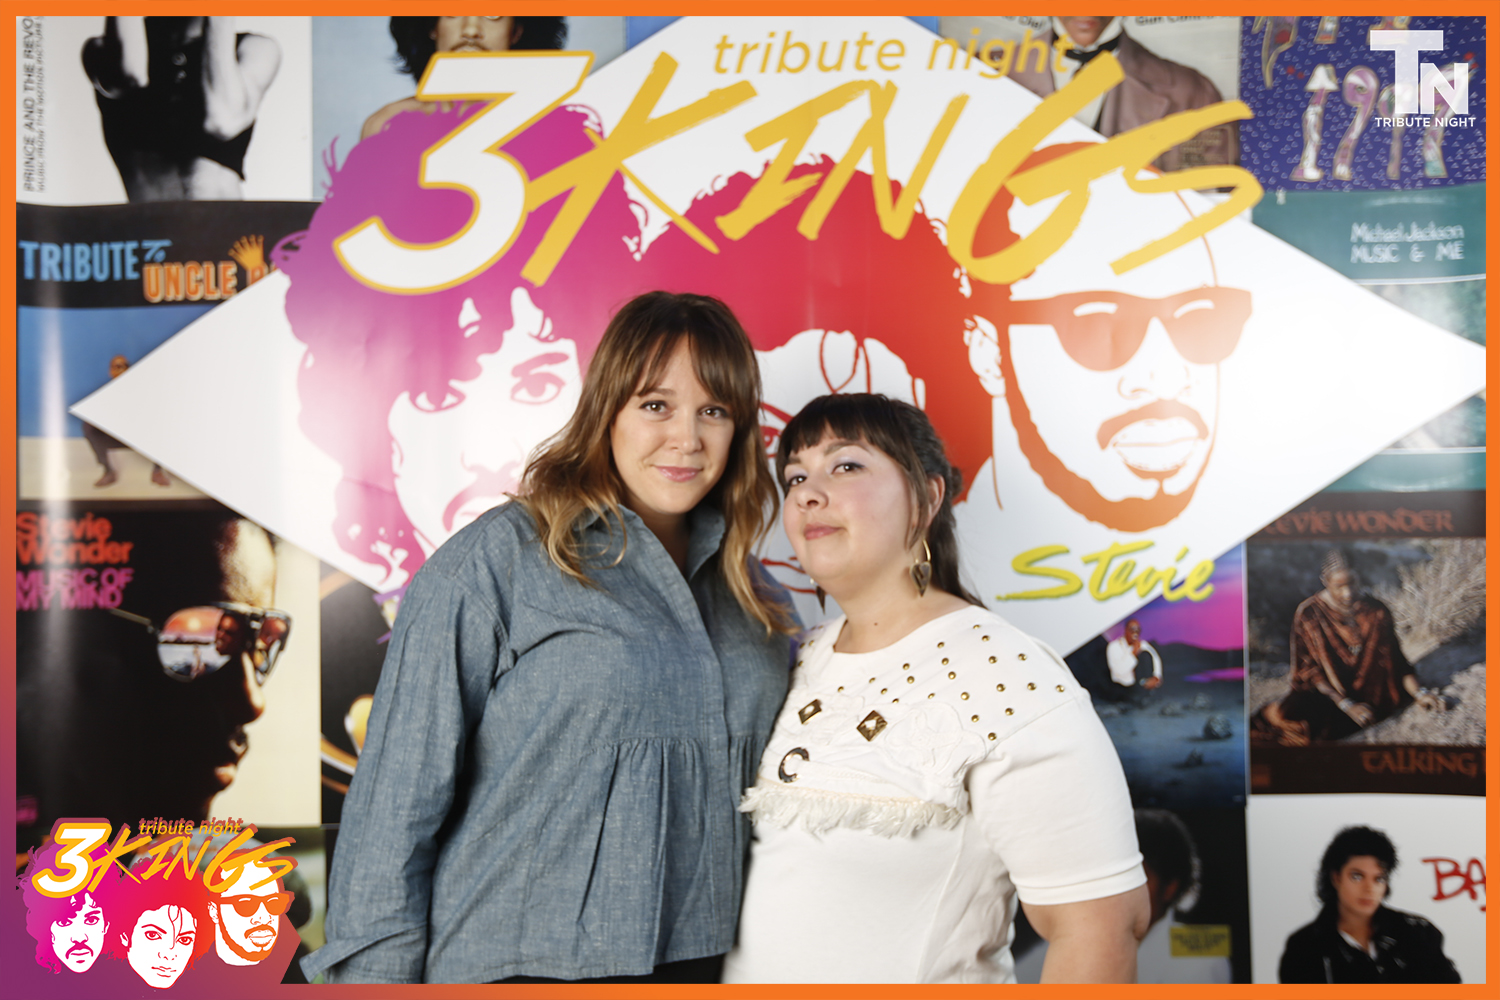 3kings Tribute Night Logo187.jpg